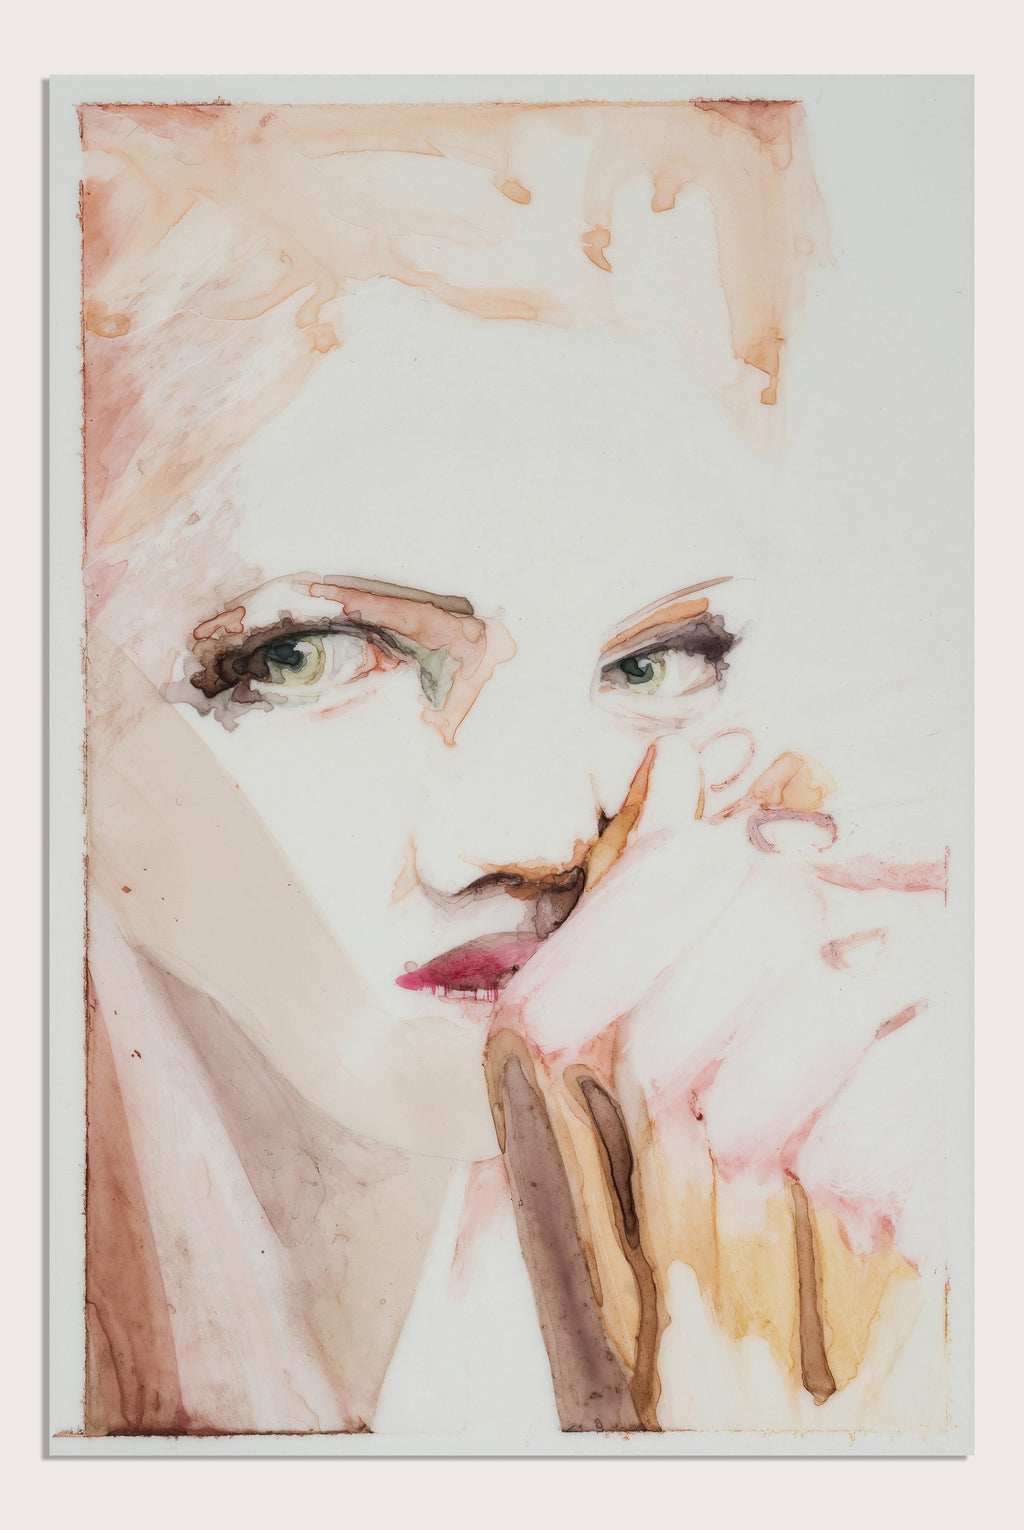 'Surface VII', a figurative painting on translucent paper by woman artist Alex Roberts